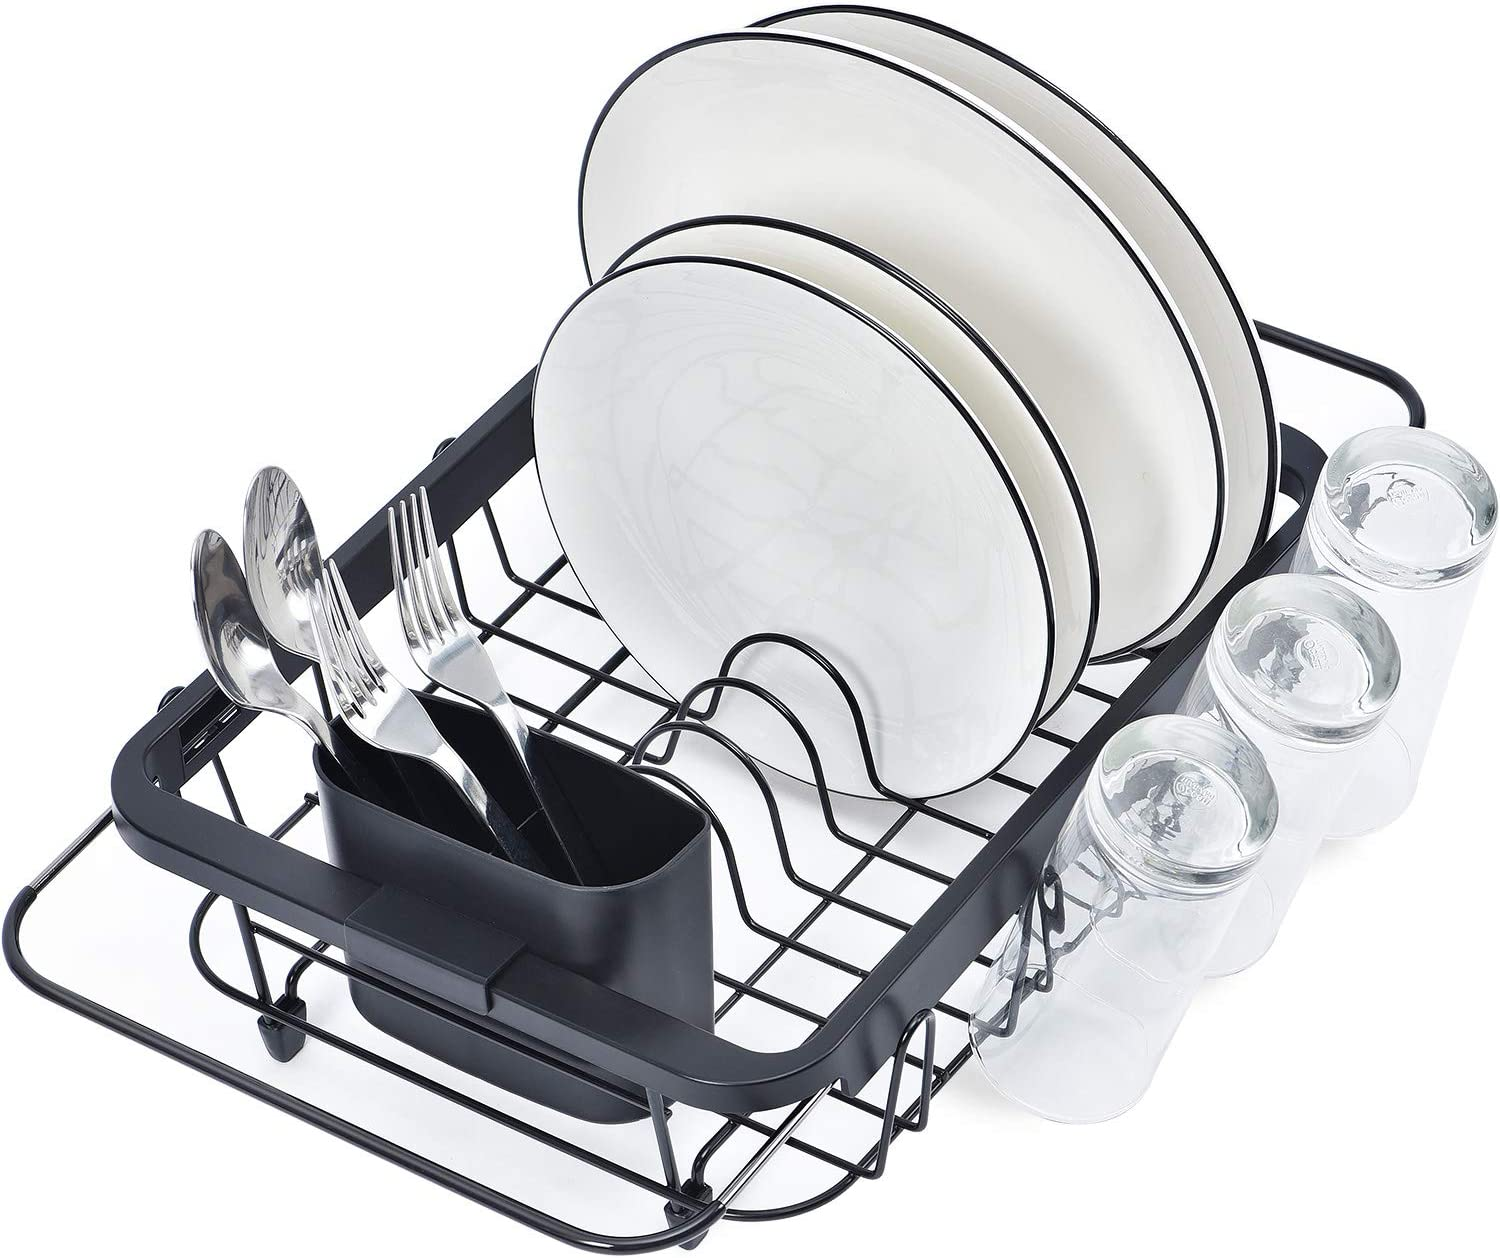 TOOLF Expandable Dish Drying Rack Over the Sink Adjustable Dish Rack In Sink Or On Counter Dish Drainer with Utensil Holder Rustproof for Kitchen